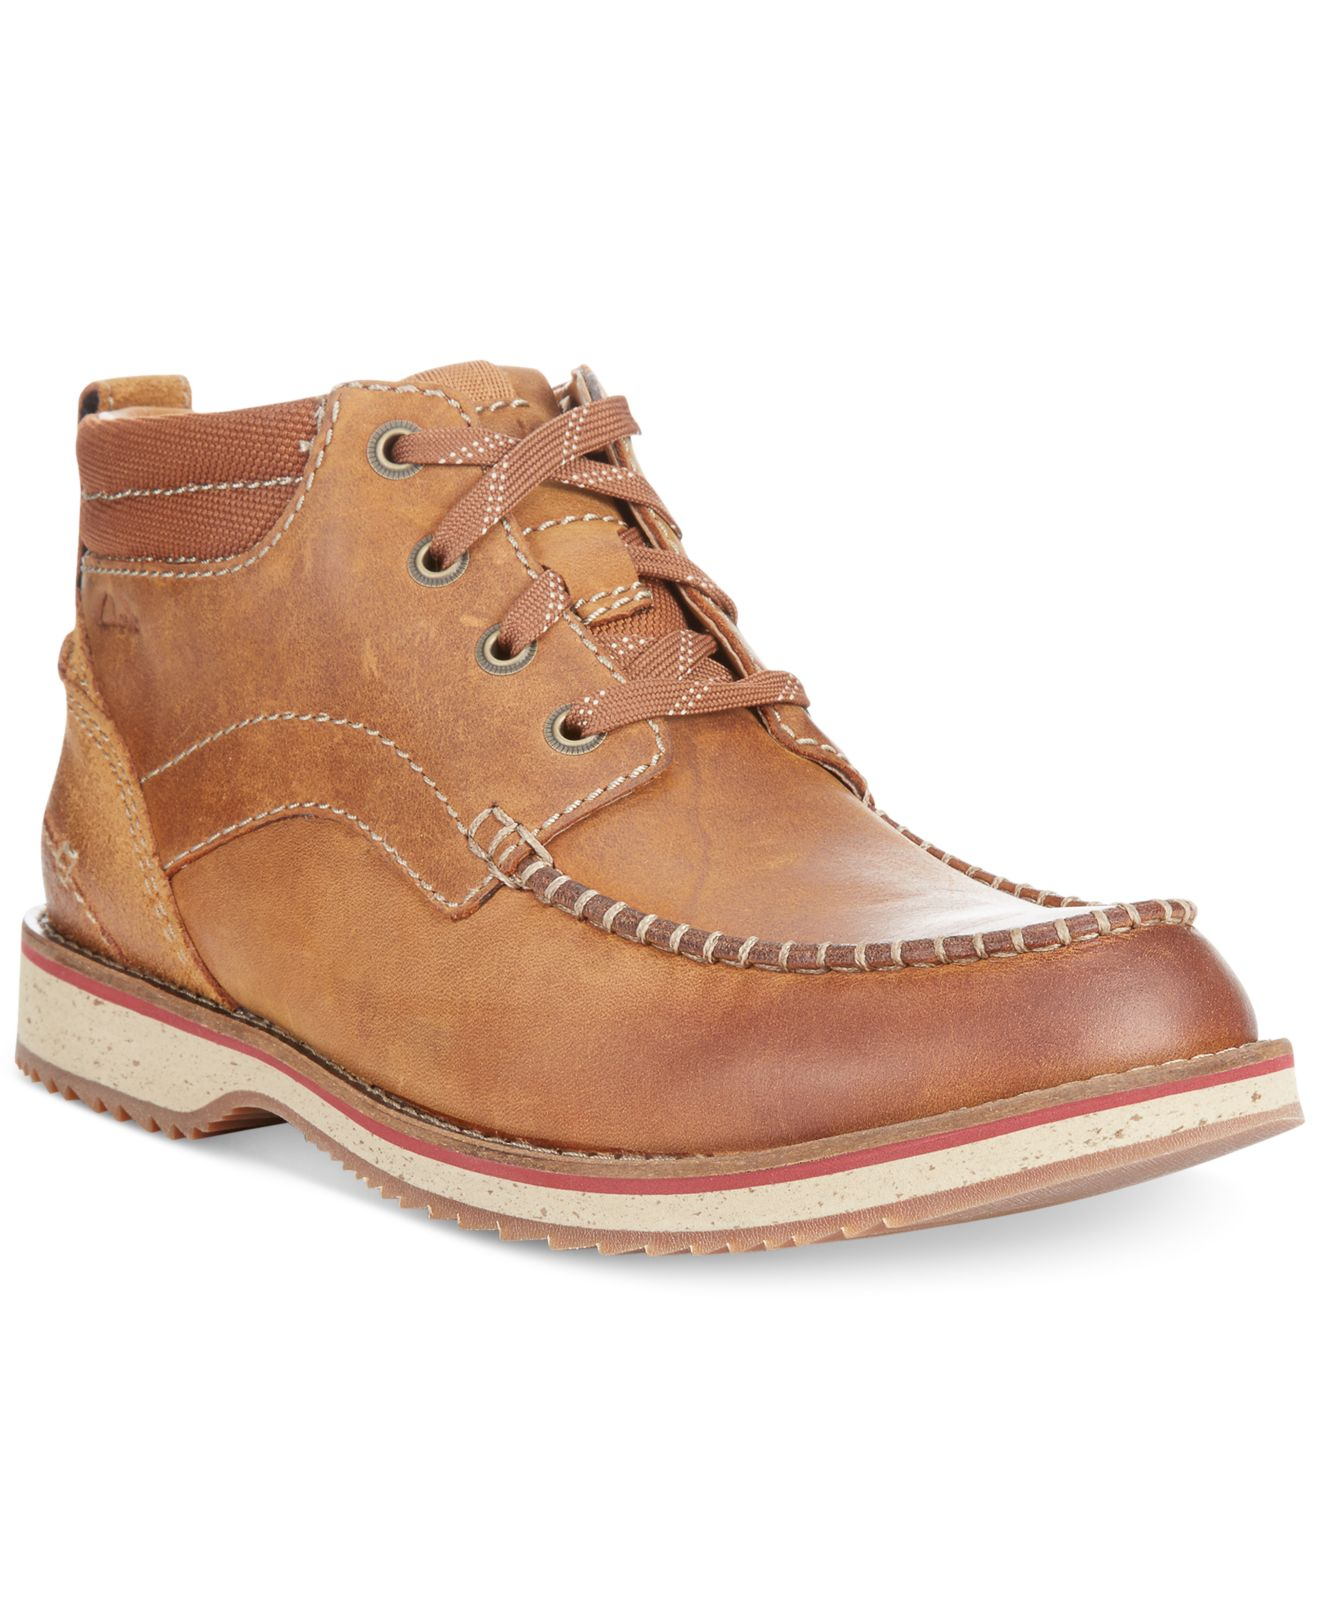 Lyst Clarks Mahale Mid Boots In Brown For Men